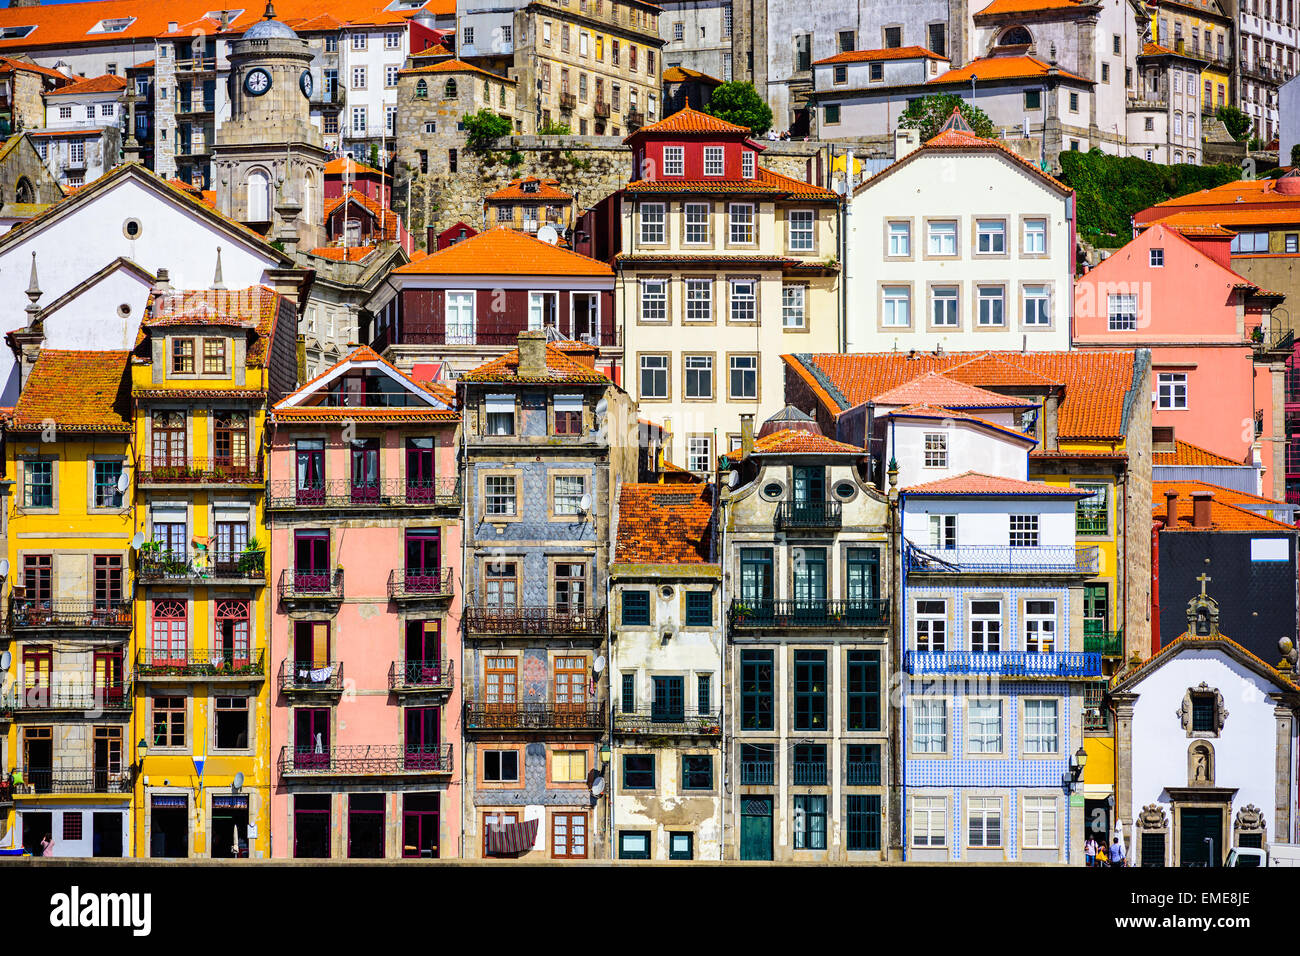 Porto, Portugal les bâtiments anciens. Photo Stock